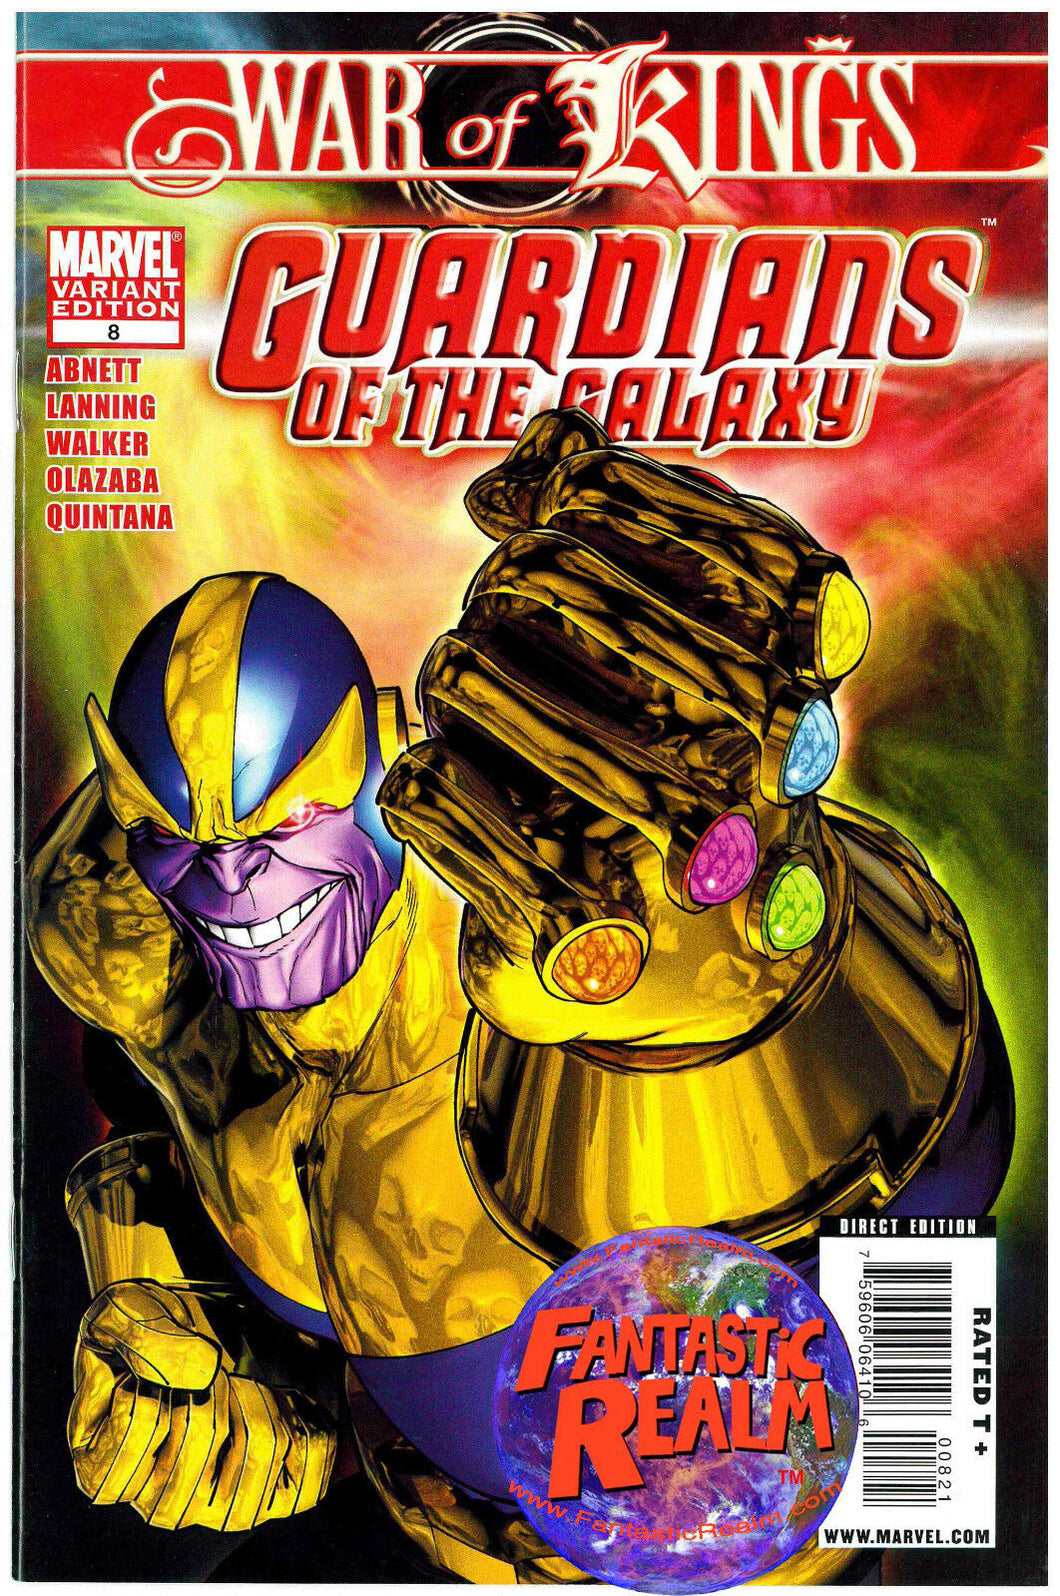 GUARDIANS OF THE GALAXY #8: WAR OF KINGS THANOS INFINITY GAUNTLET VARIANT MARVEL